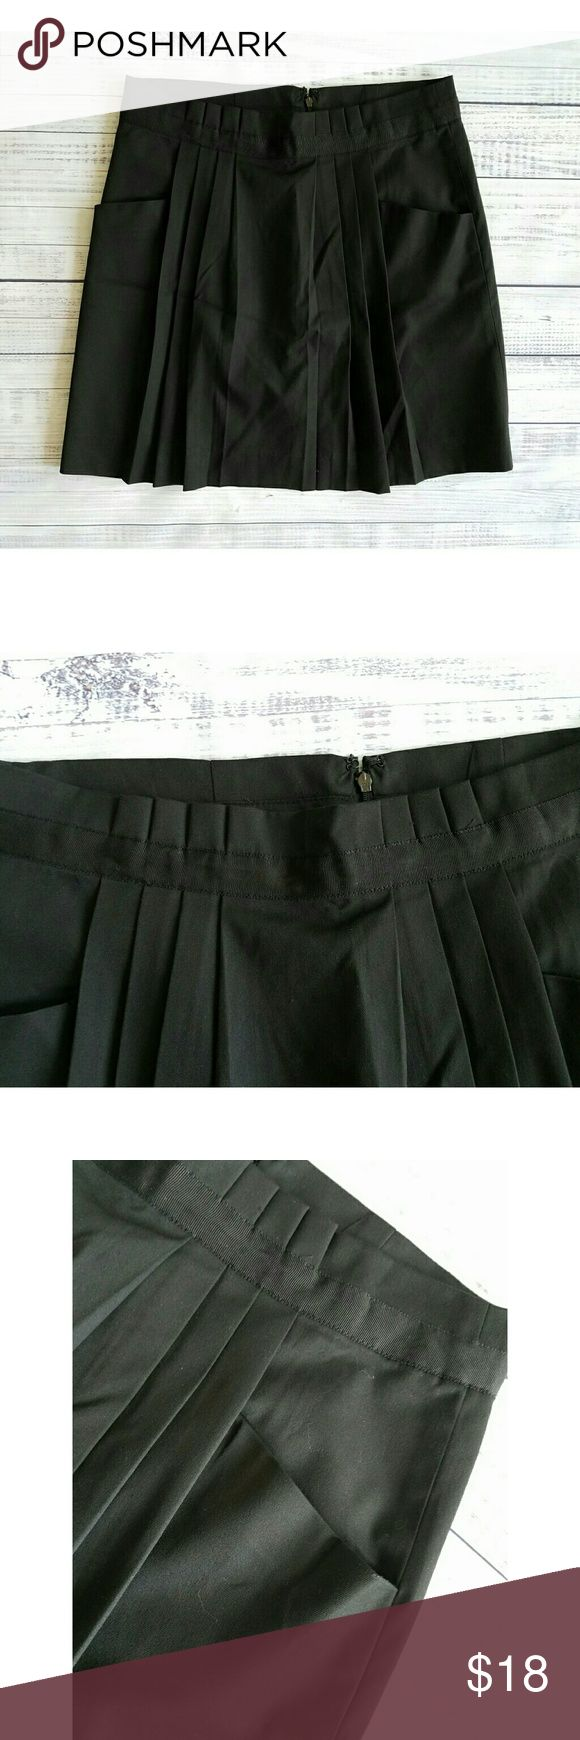 Gap career skirt Lightly worn  Pleated front Pockets Linned  Polyester, viscose, spandex 16 inch waist laying flat 19 inches long GAP Skirts A-Line or Full